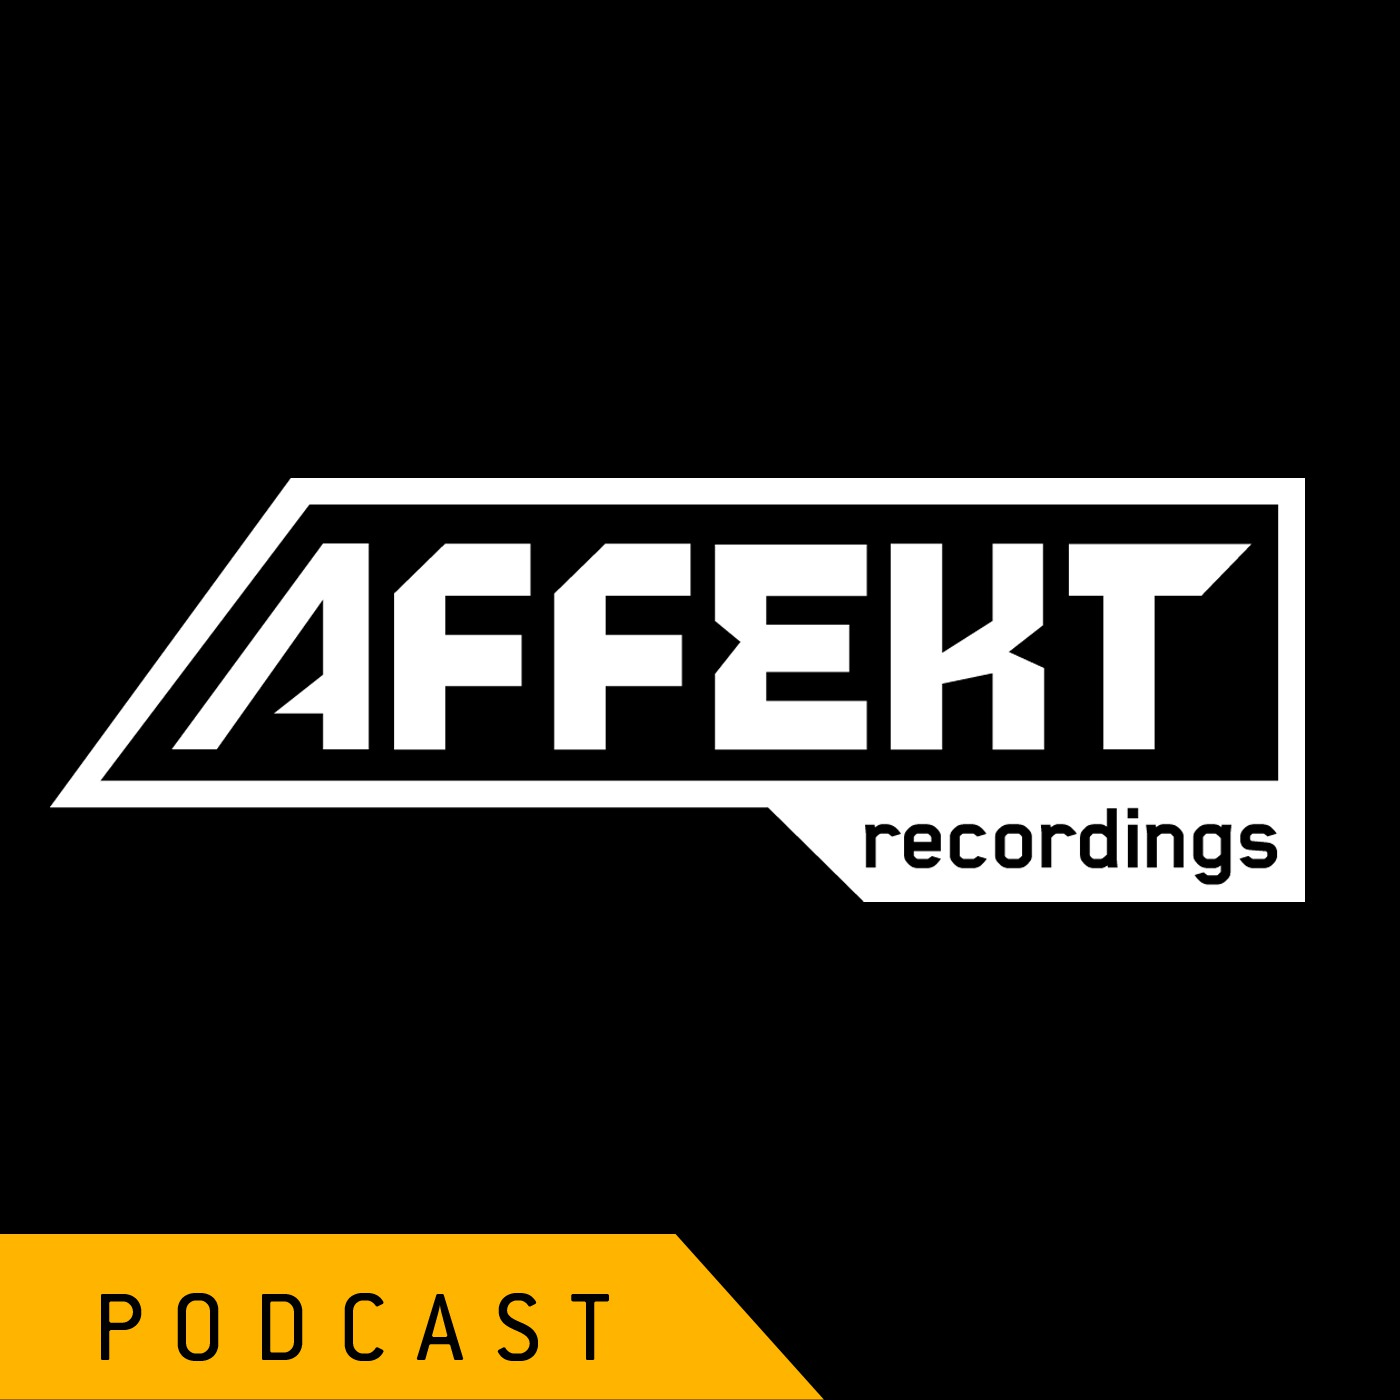 Affekt Recordings Podcast